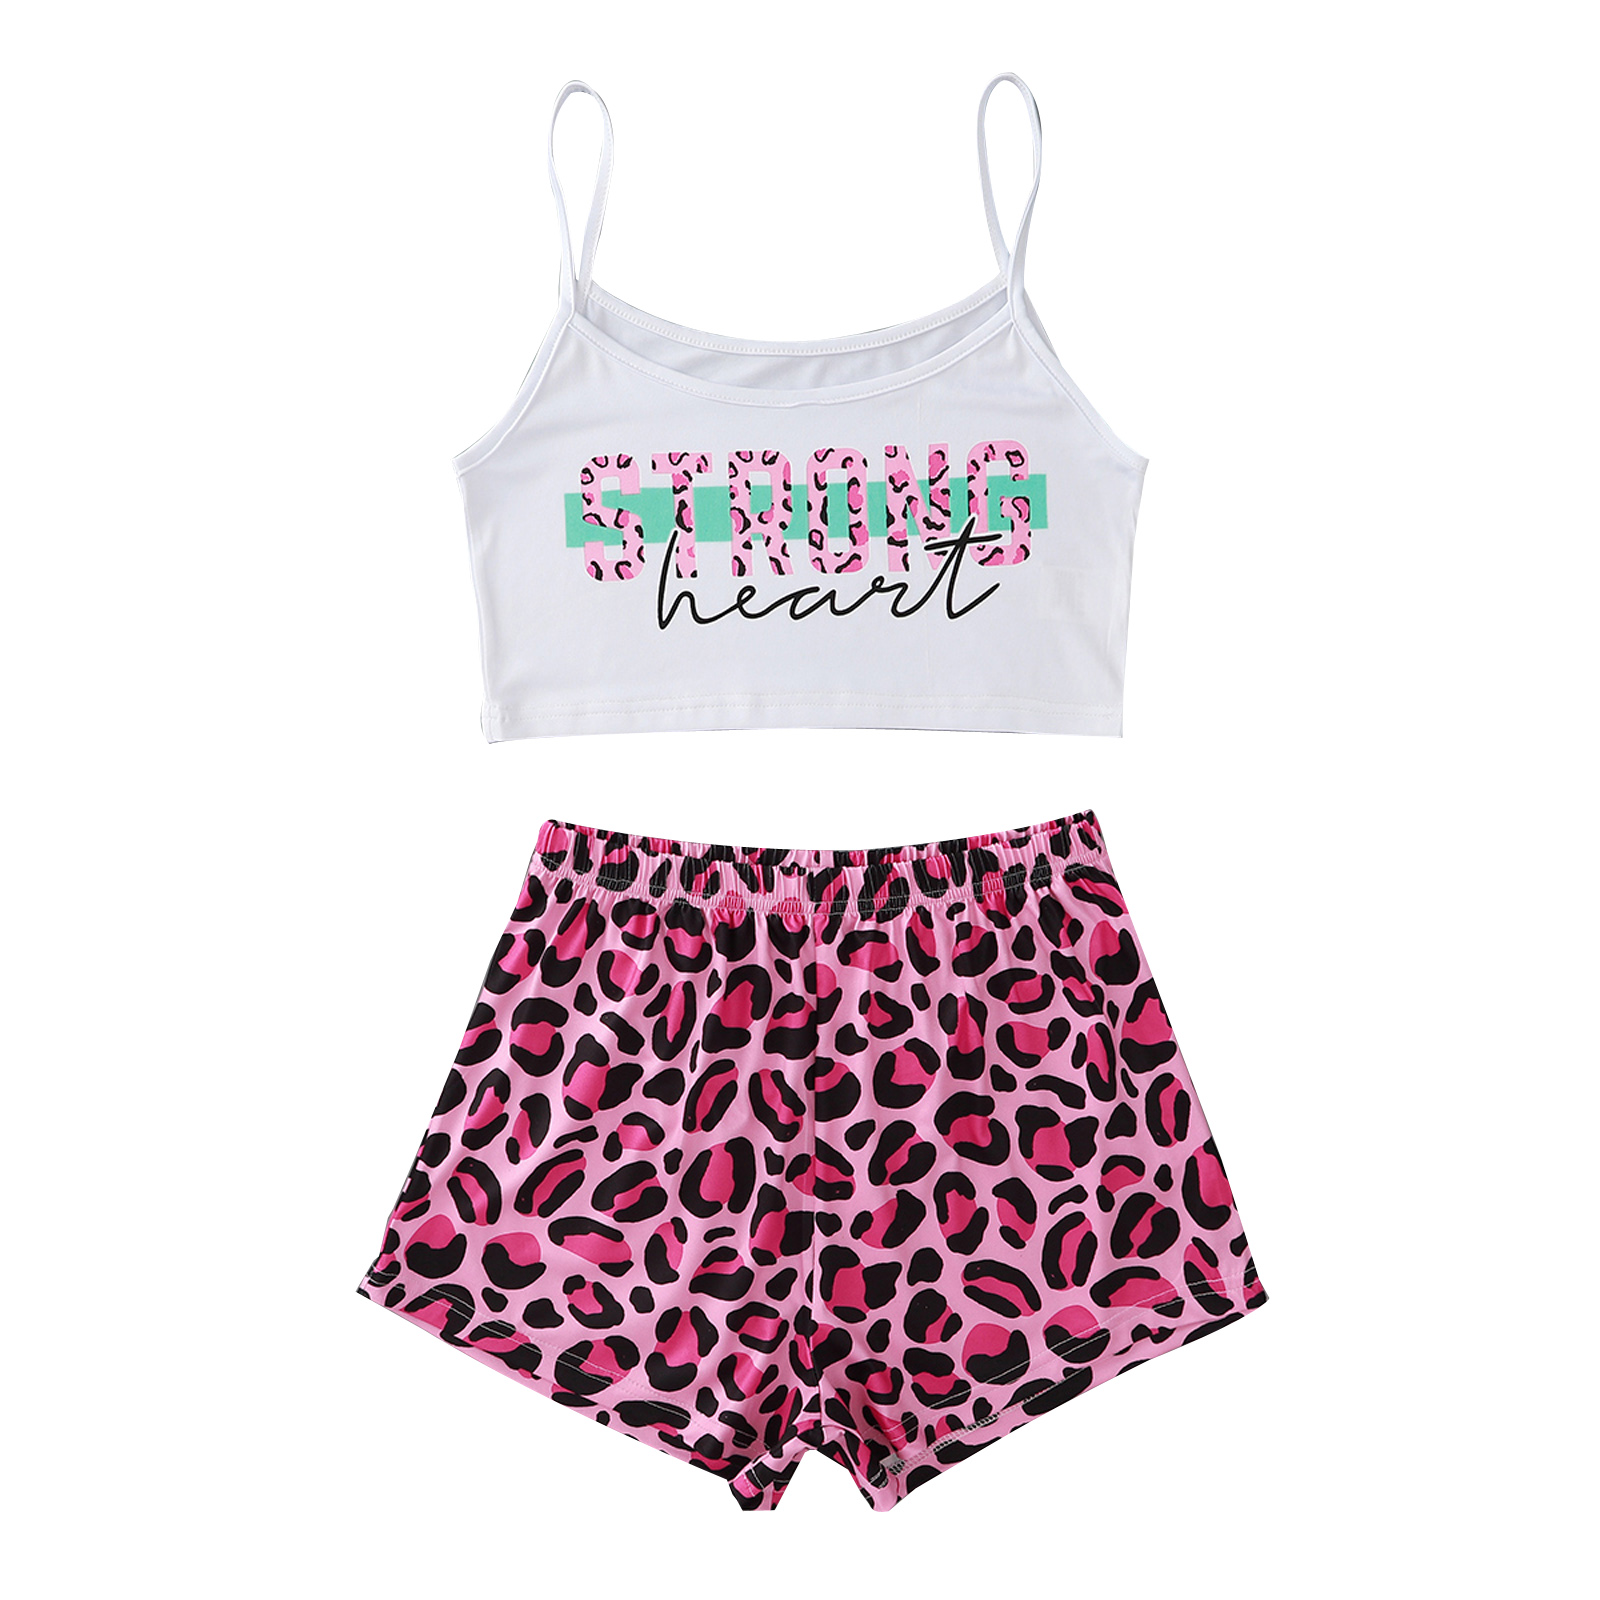 Women's Camisole or T-shirt Shorts Set Unique Letter Pattern Exposed Navel Top and Print High Waist Shorts